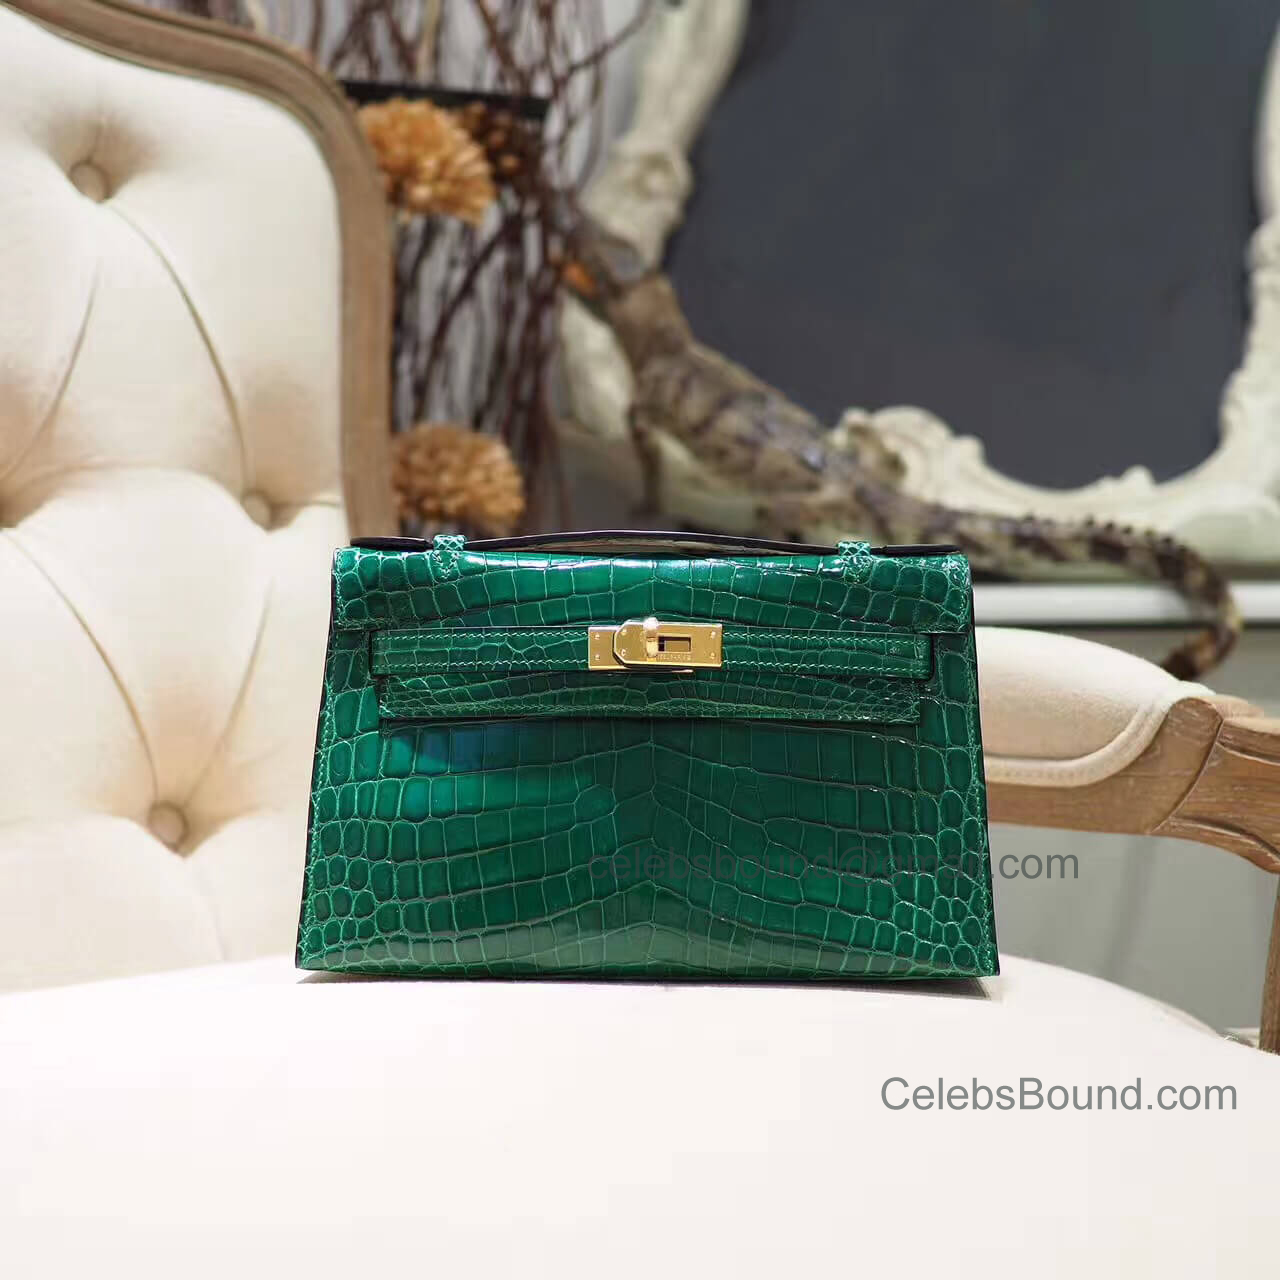 Replica Hermes Mini Kelly 22 Pochette Bag in Vert Emeraude Shiny Nile Croc GHW